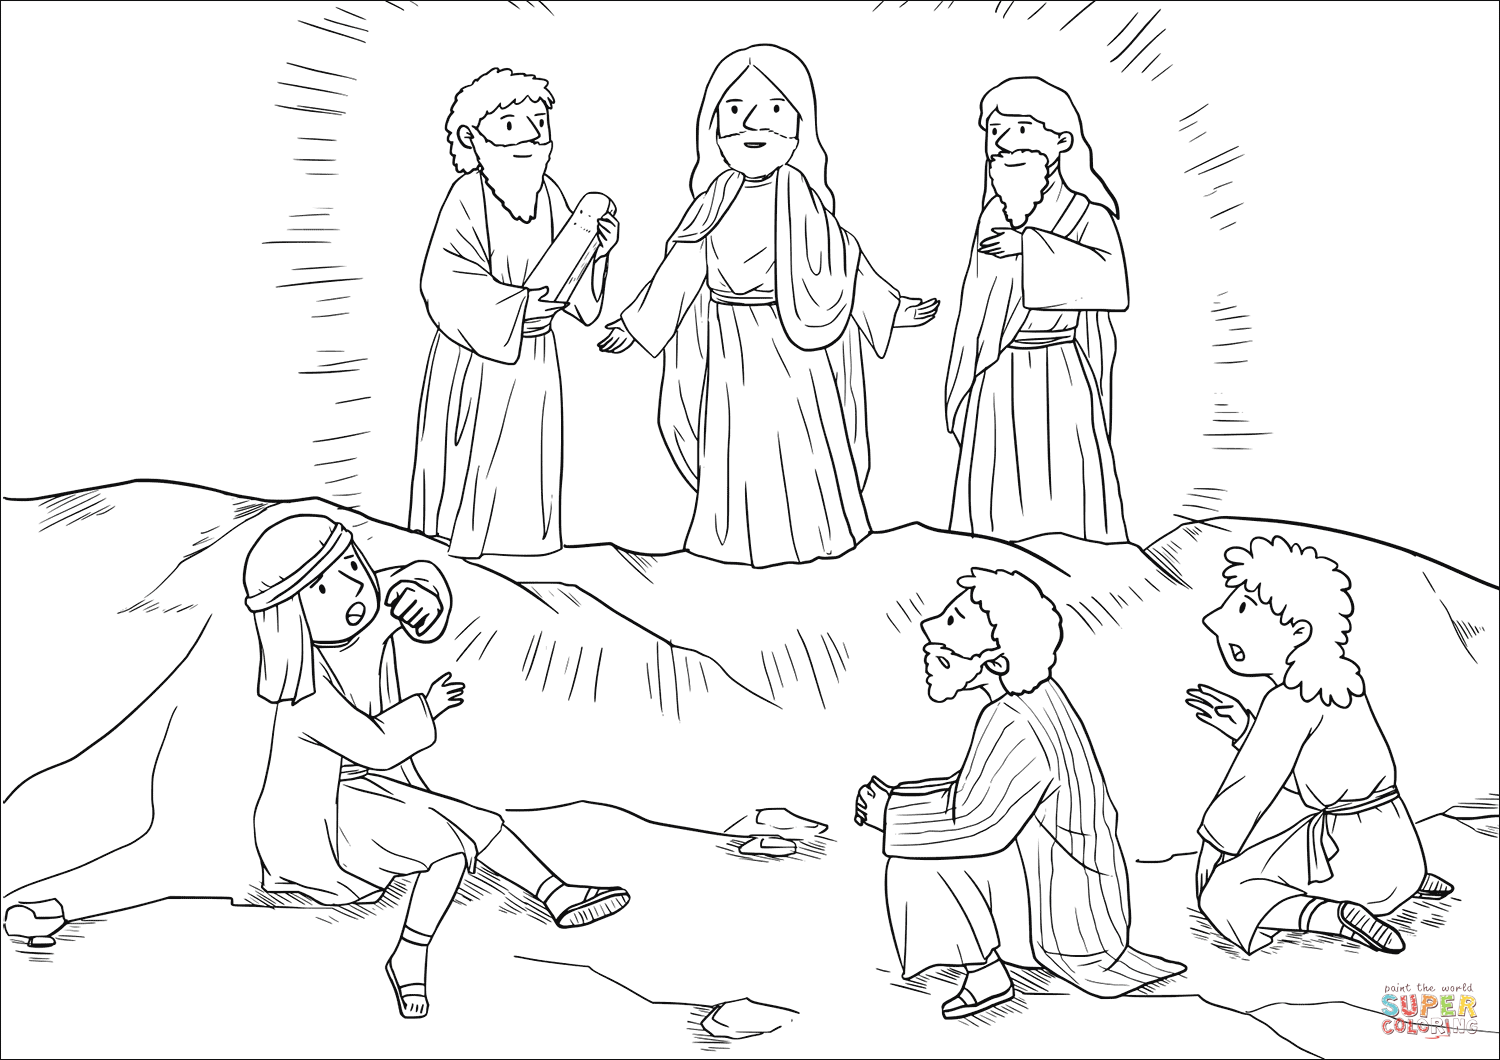 Moses And Elijah Appeared Before Them Talking With Jesus Coloring Page Free Printa Jesus Coloring Pages Sunday School Coloring Pages Transfiguration Of Jesus